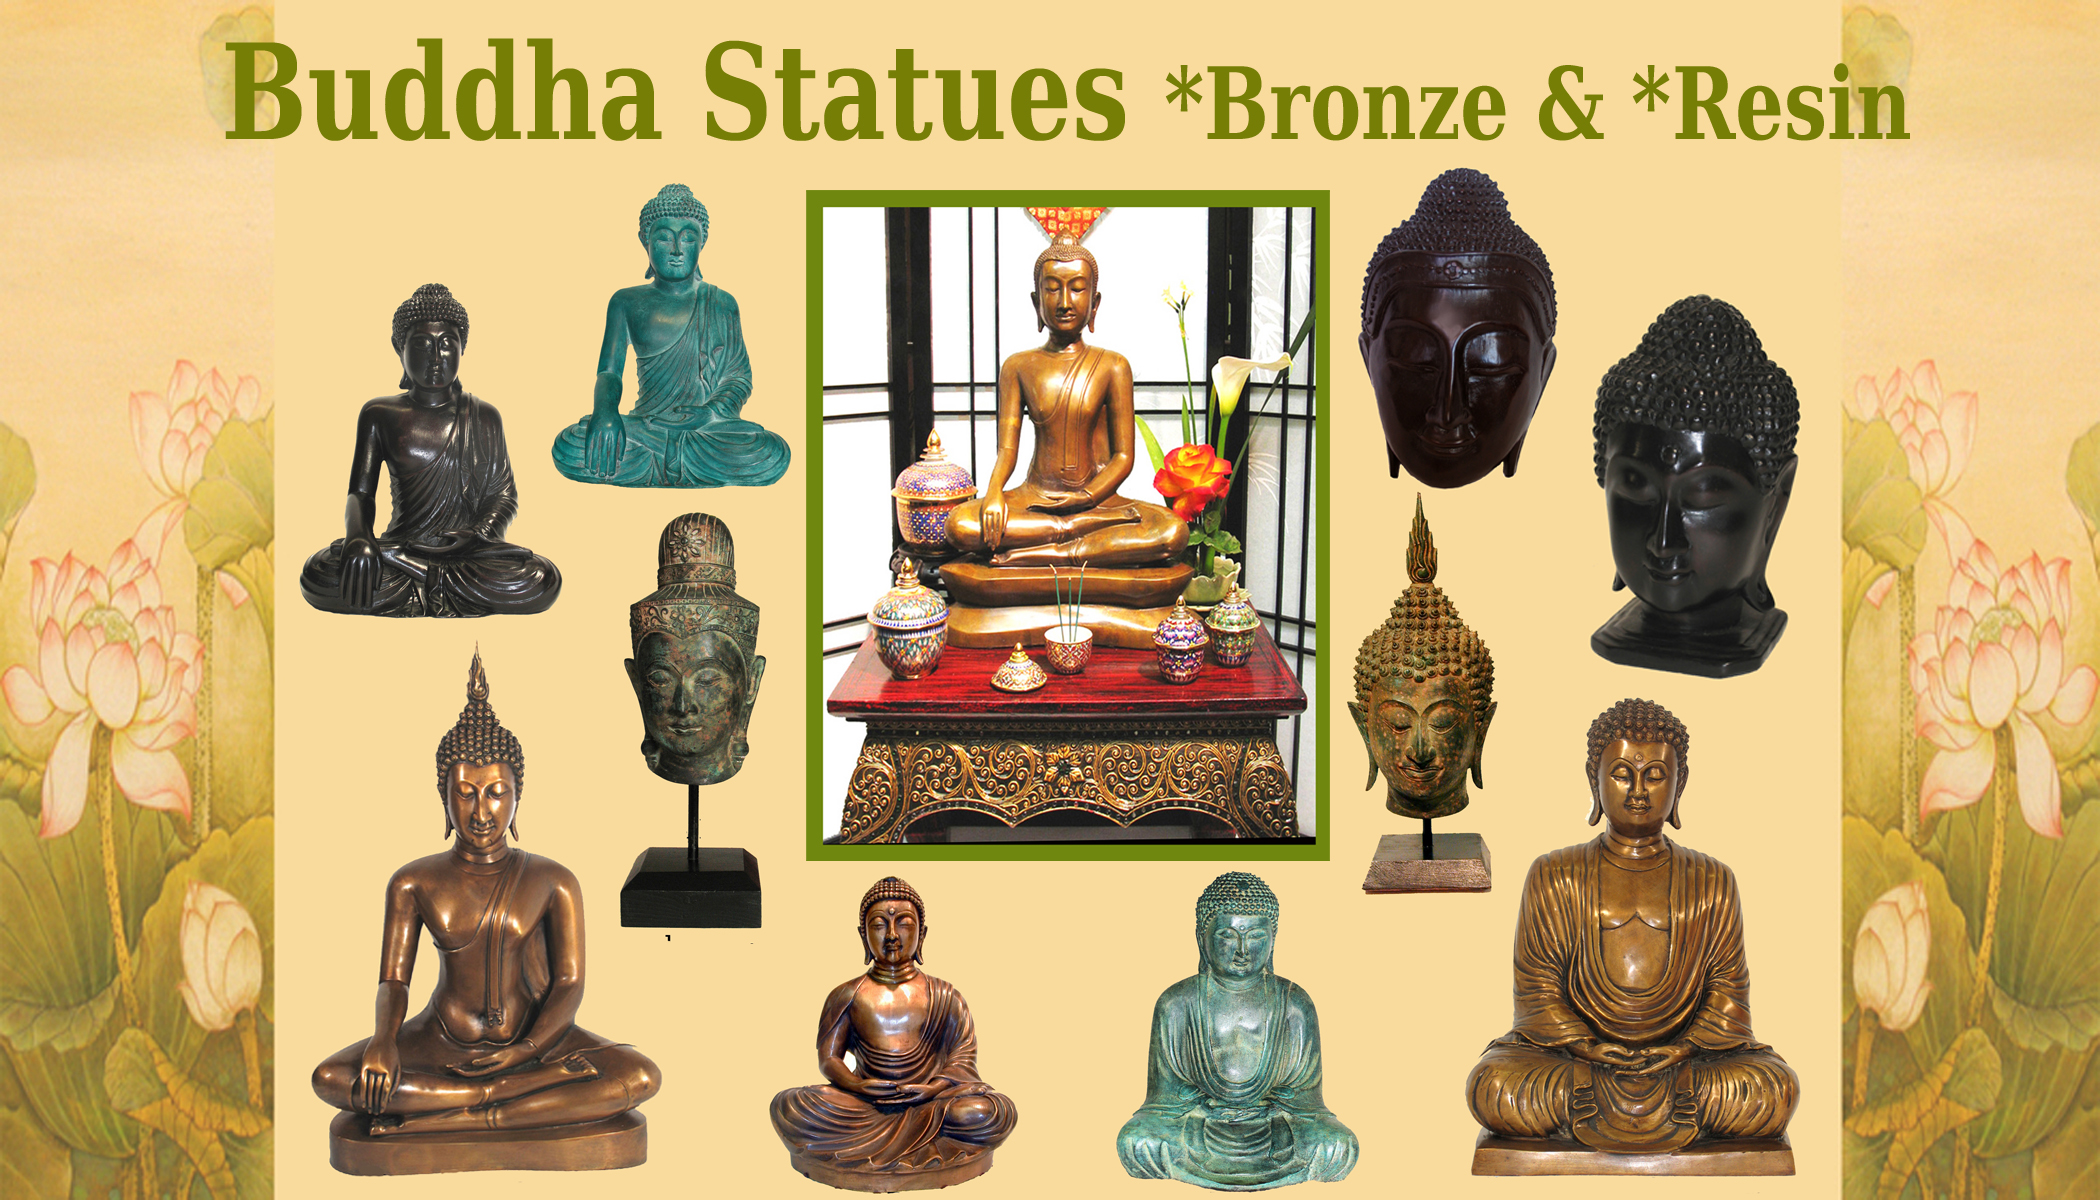 buddha wordpress decor for yoga home studio statue garden statues